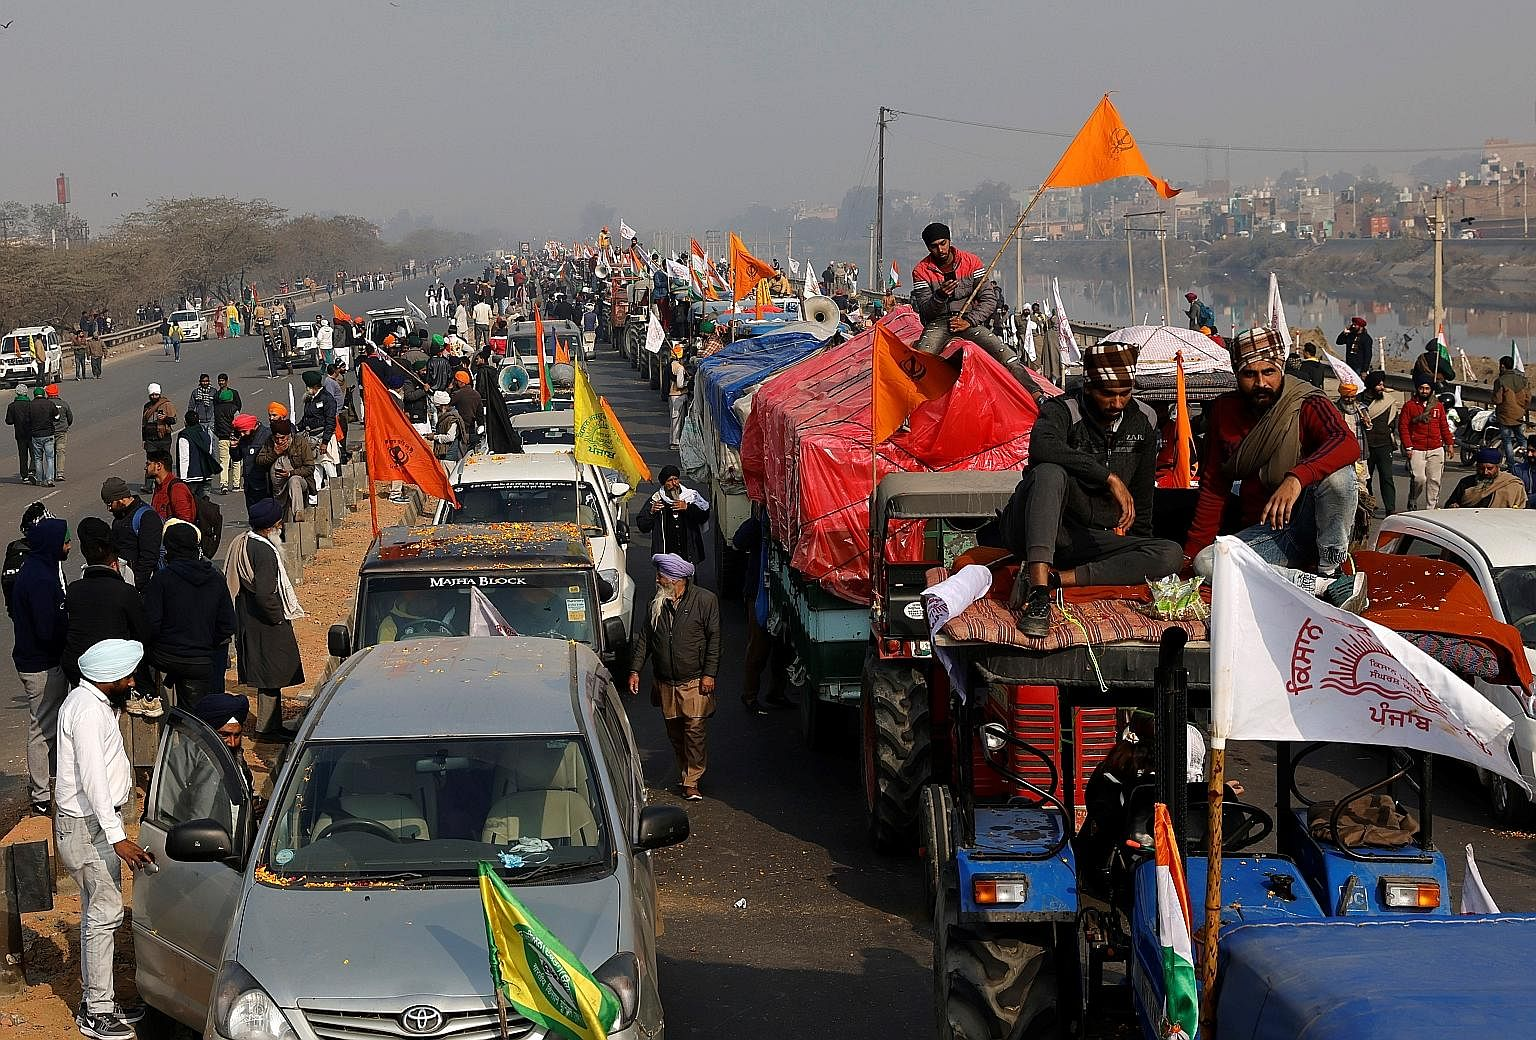 Farmers at a tractor rally in Delhi yesterday - India's Republic Day - to protest against farm laws. One person was reportedly killed in protests, and several police officers were injured.